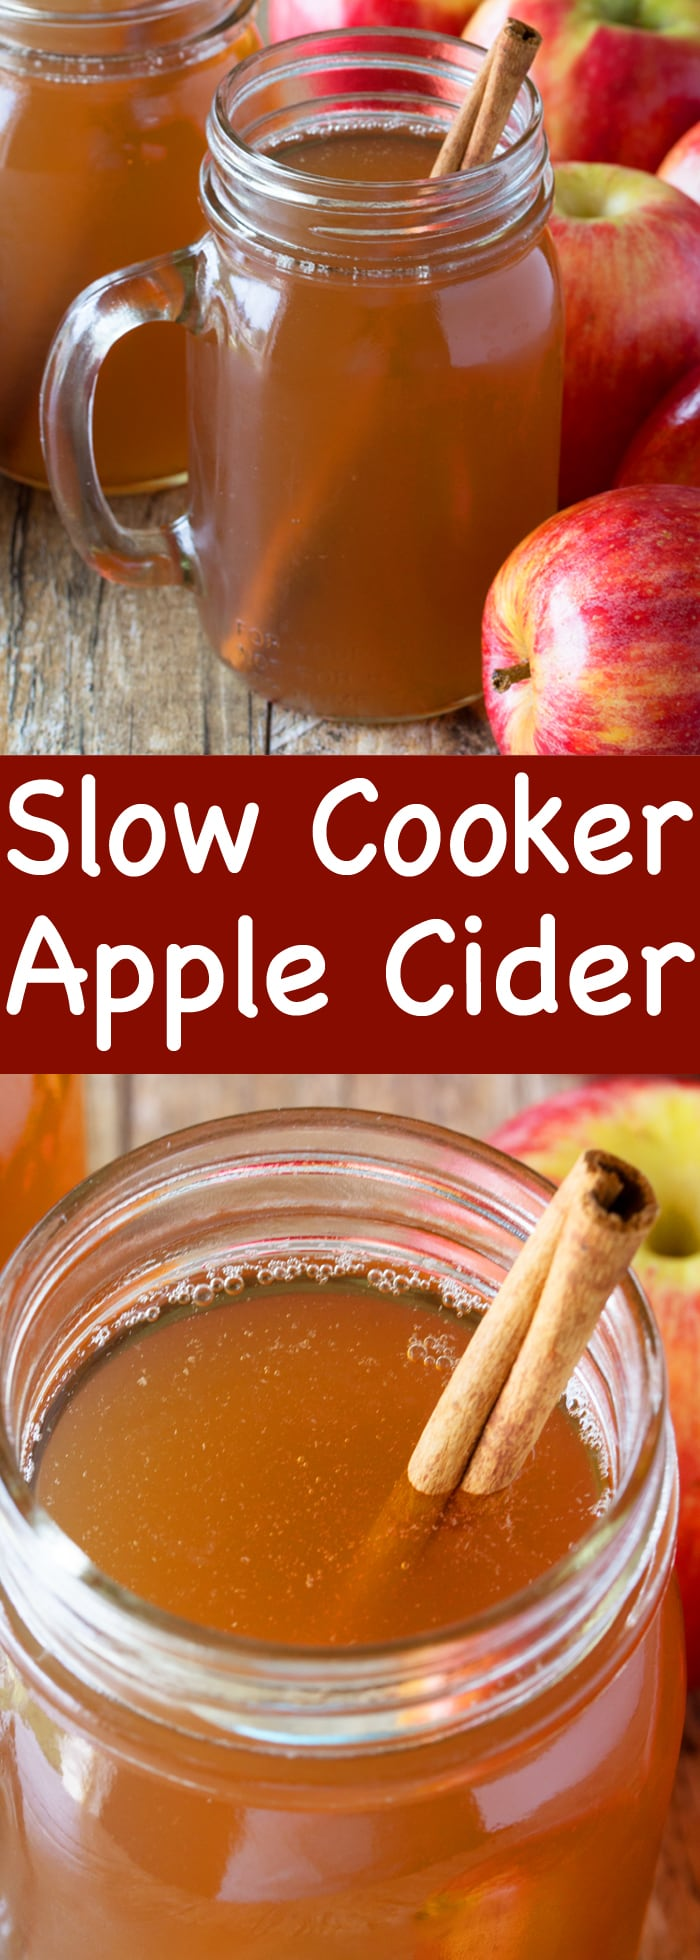 Cuddle up and stay warm with a mug of spiced apple cider. This Slow Cooker Apple Cider is made from scratch and can be frozen to enjoy all winter long!